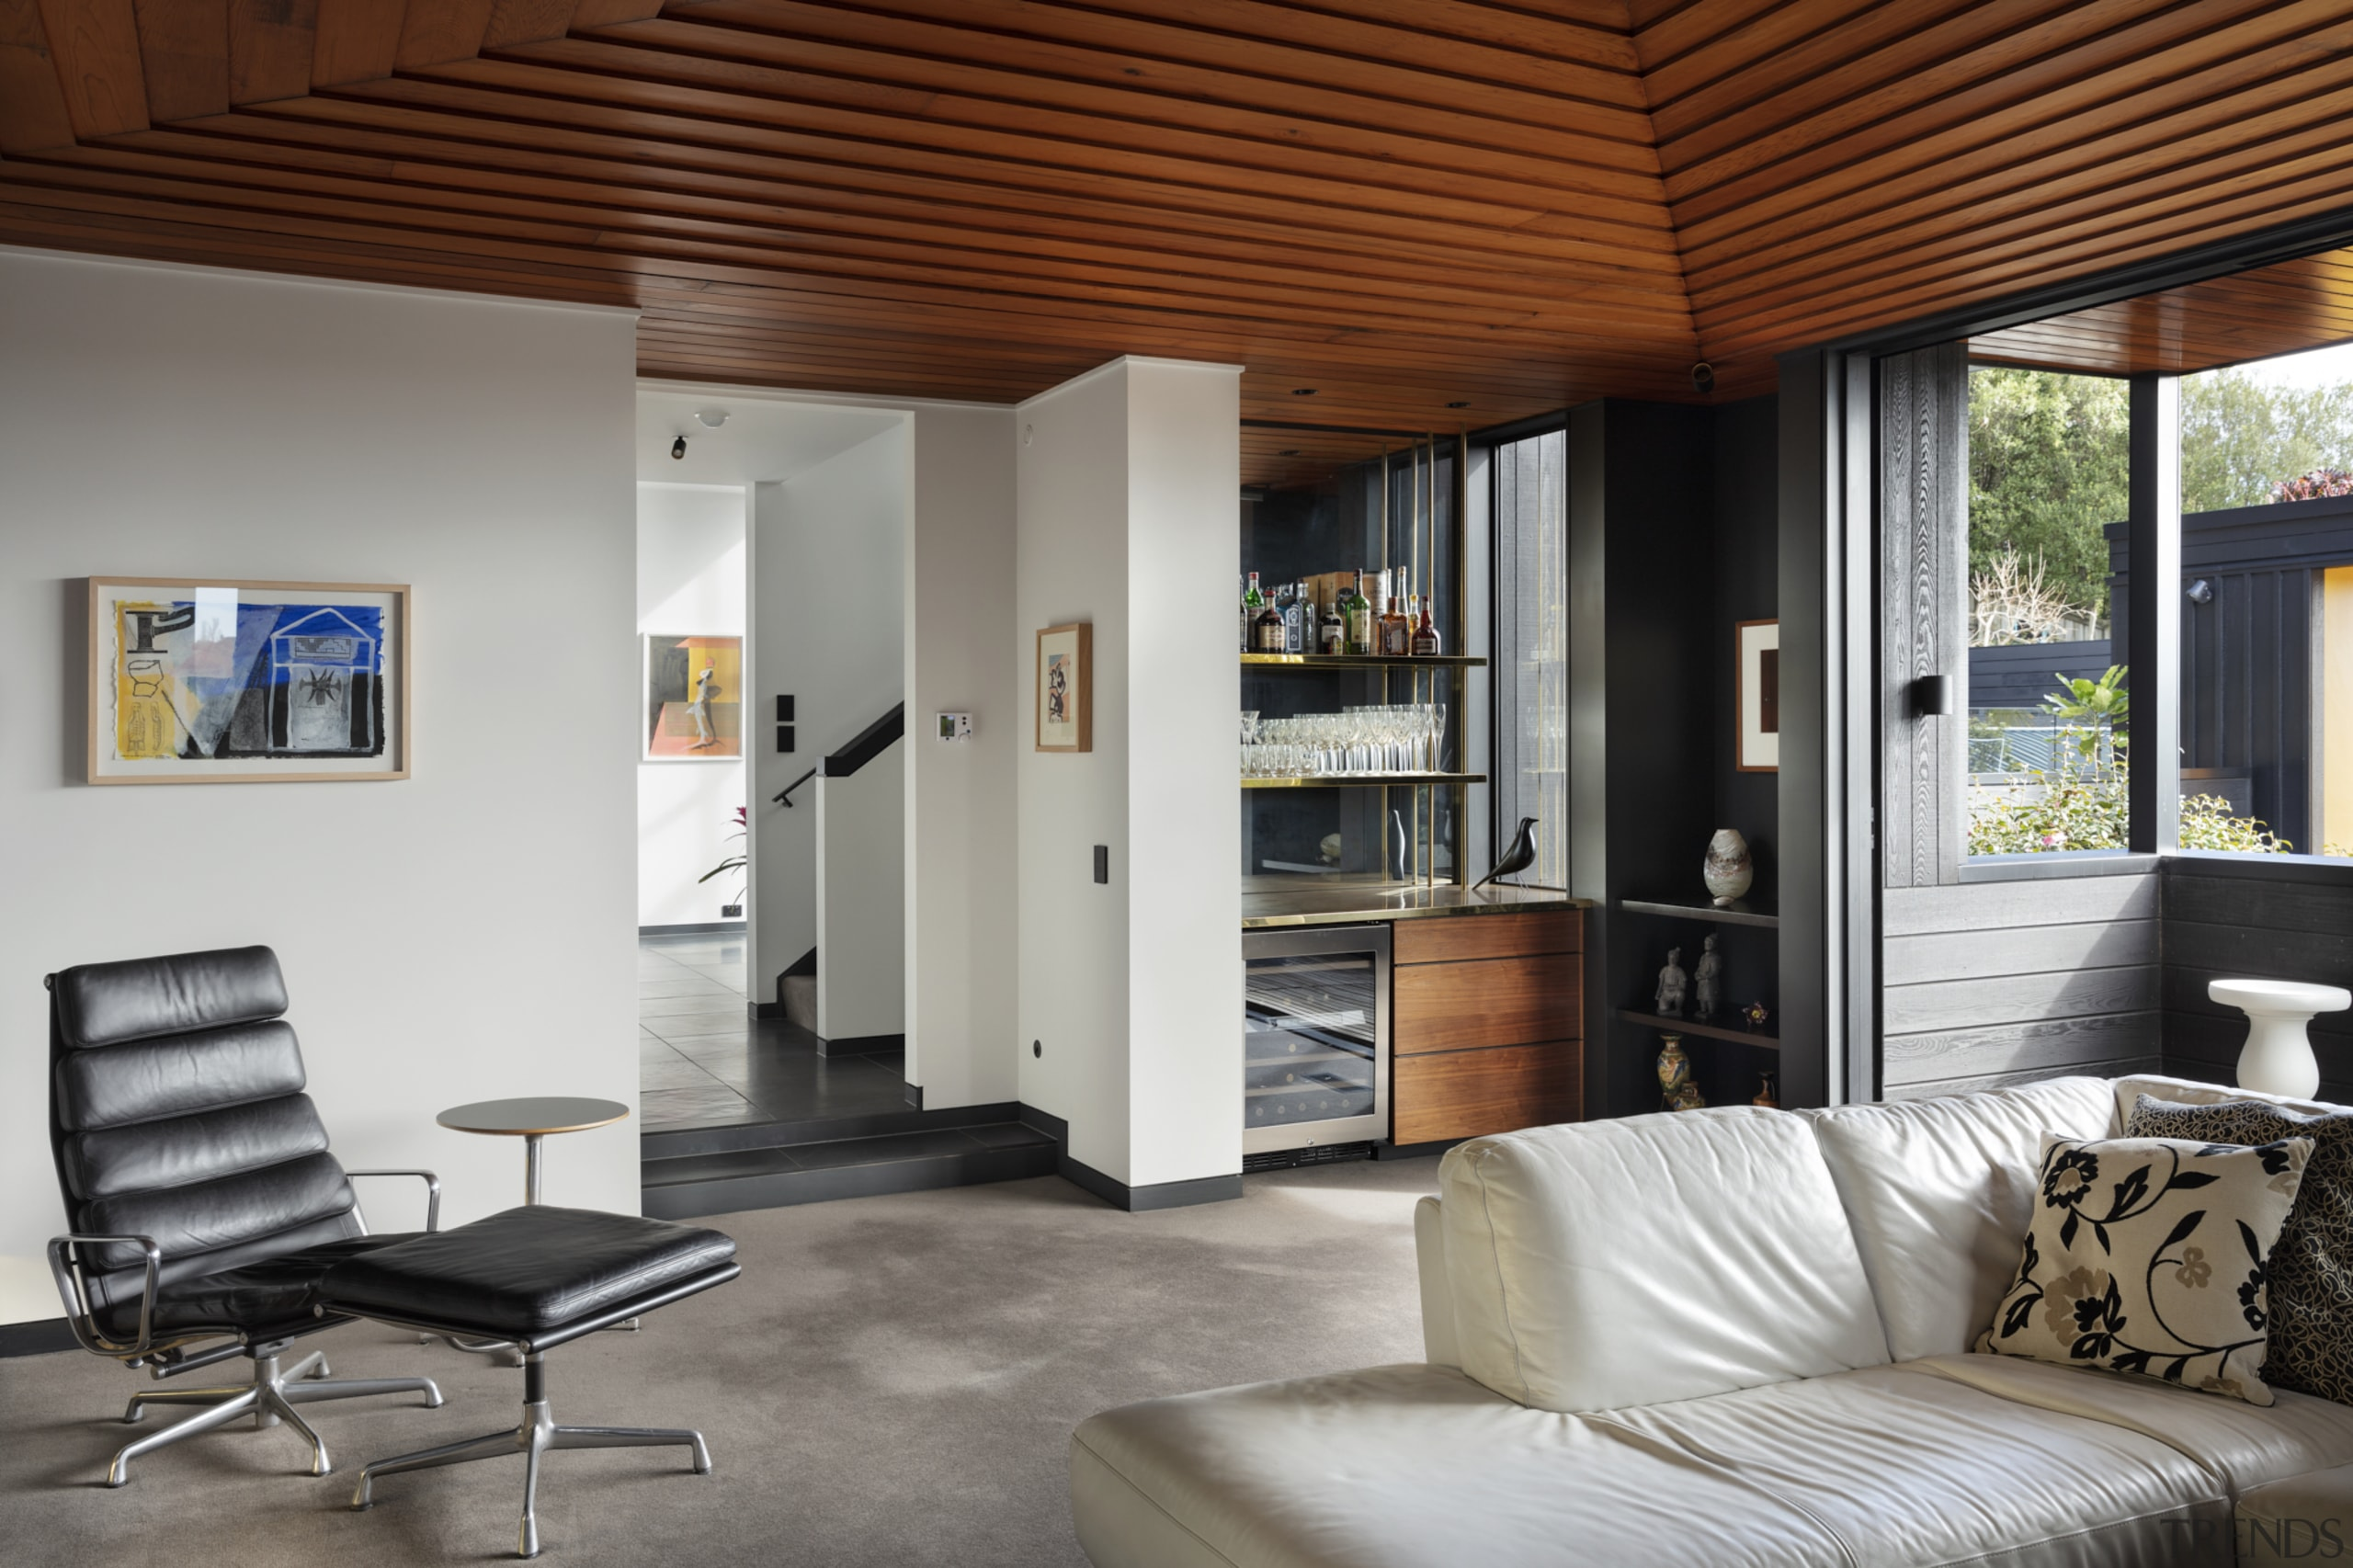 1970's home becomes a modern entertainer's dream - architecture, building, ceiling, coffee table, floor, flooring, furniture, hardwood, home, house, interior design, living room, loft, property, real estate, room, table, wall, wood, wood flooring, gray